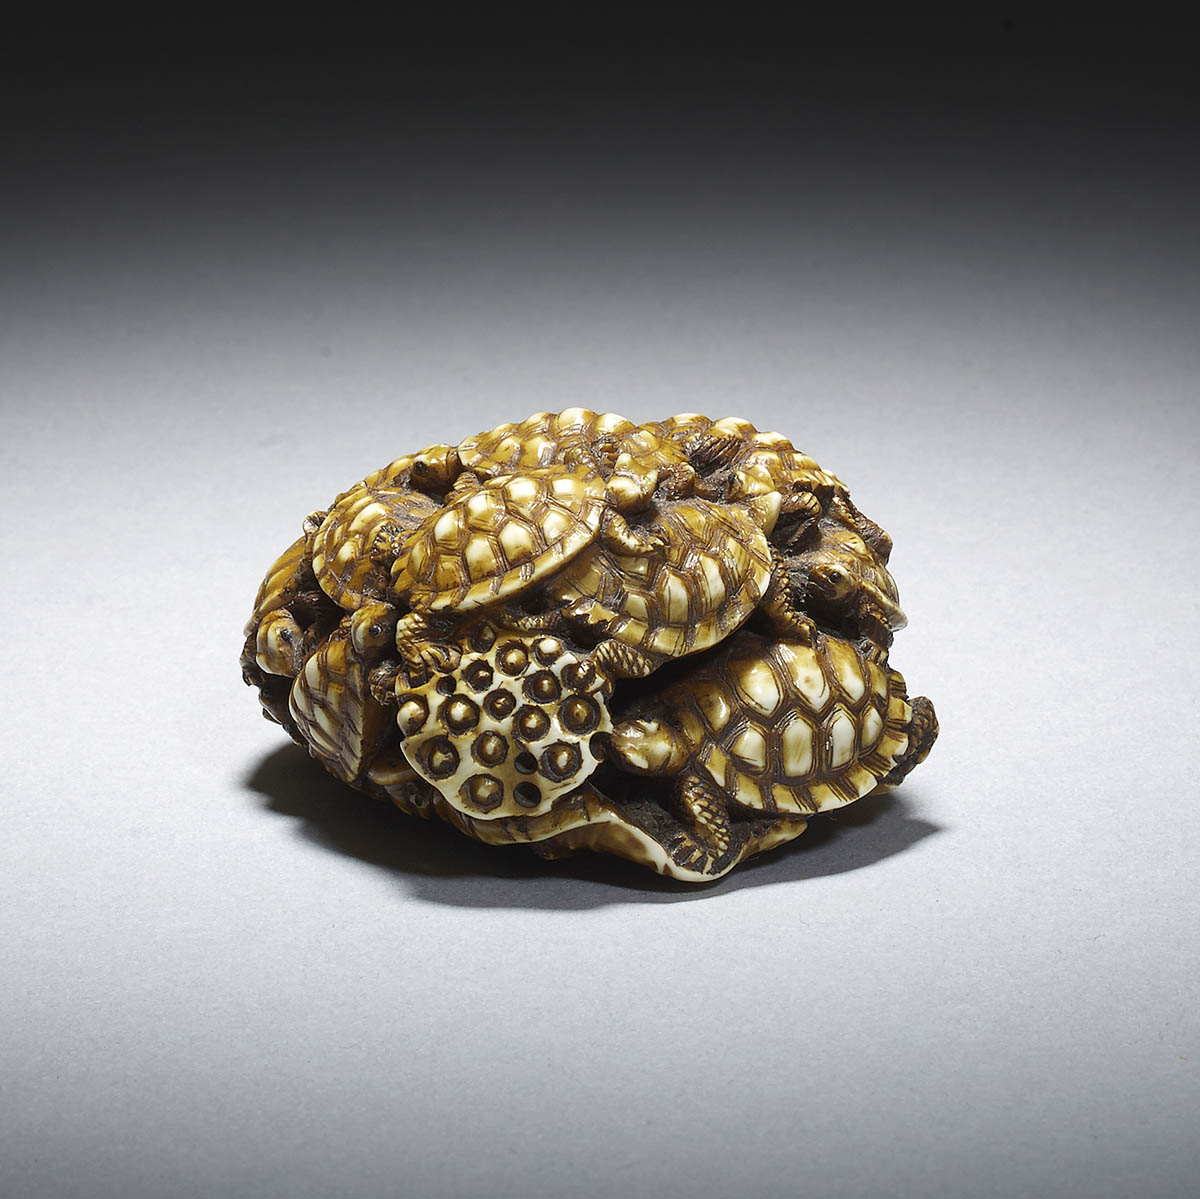 Dark stained ivory netsuke of turtles